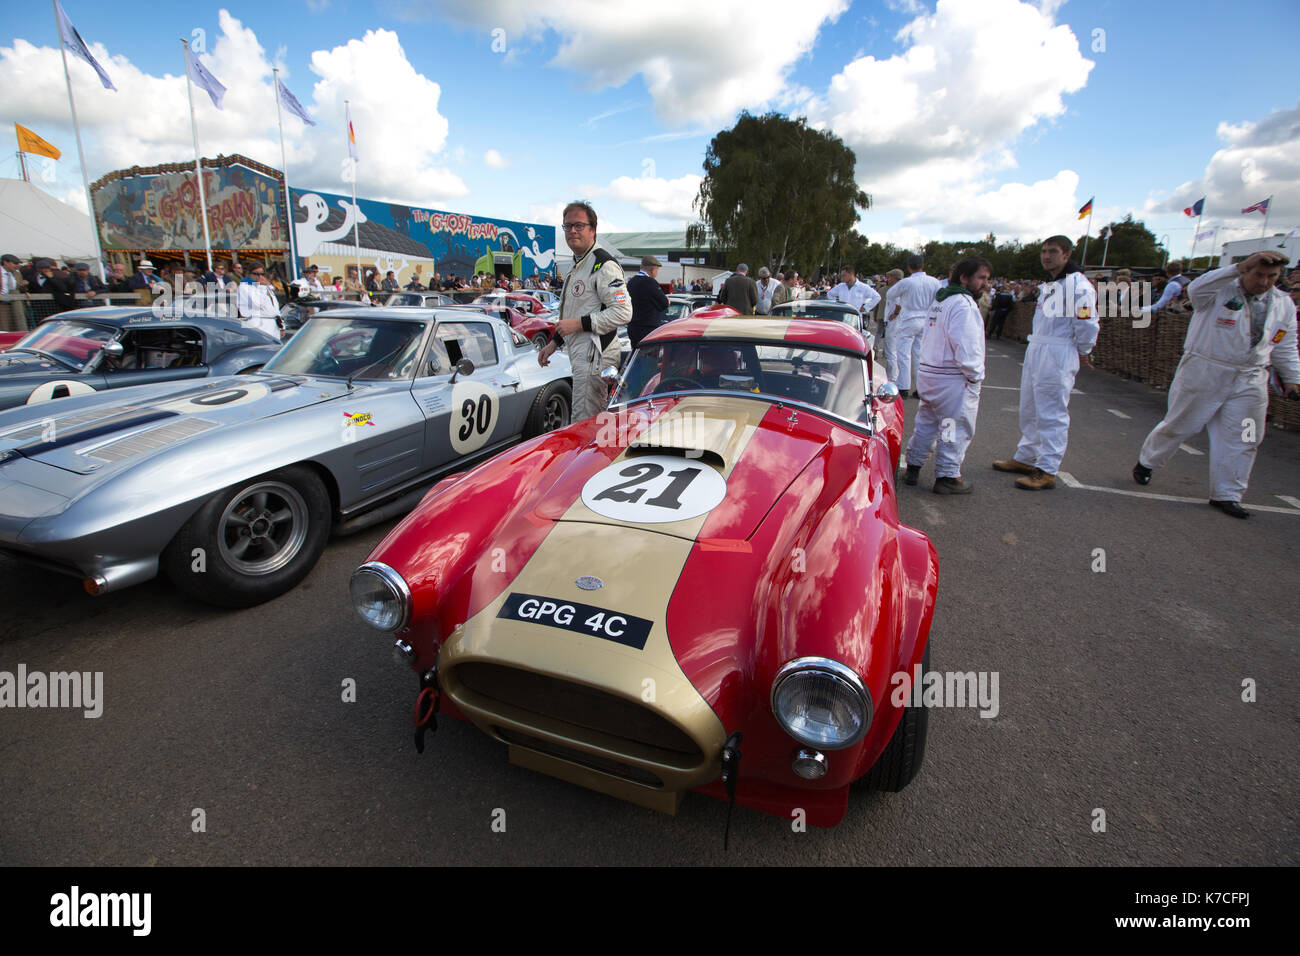 1964 AC Cobra in the assembly area Goodwood Revival 2017 Meeting, Goodwood race track, West Sussex, England, UK - Stock Image